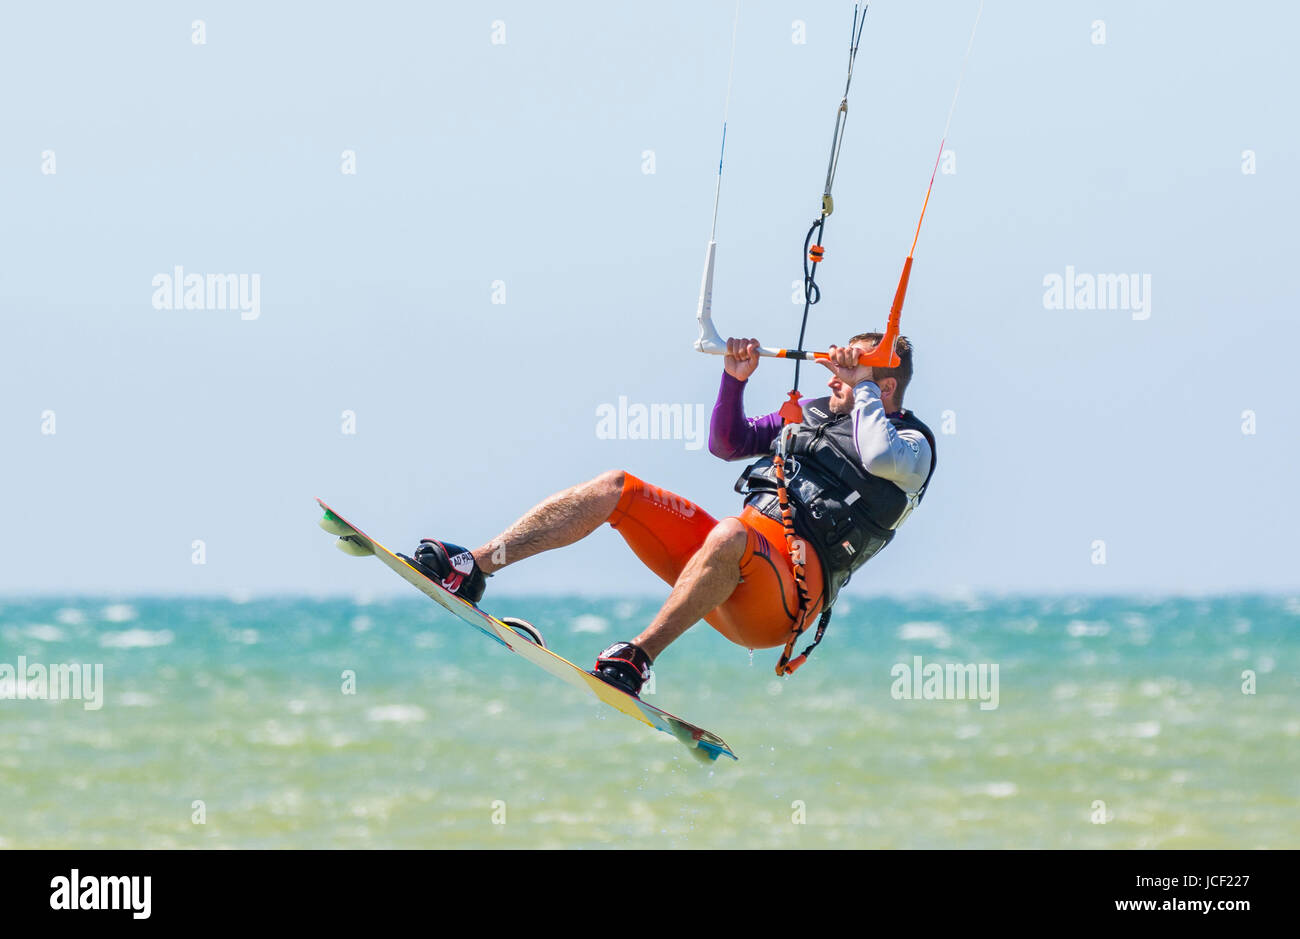 A man Kitesurfing at sea in Summer in the UK. - Stock Image